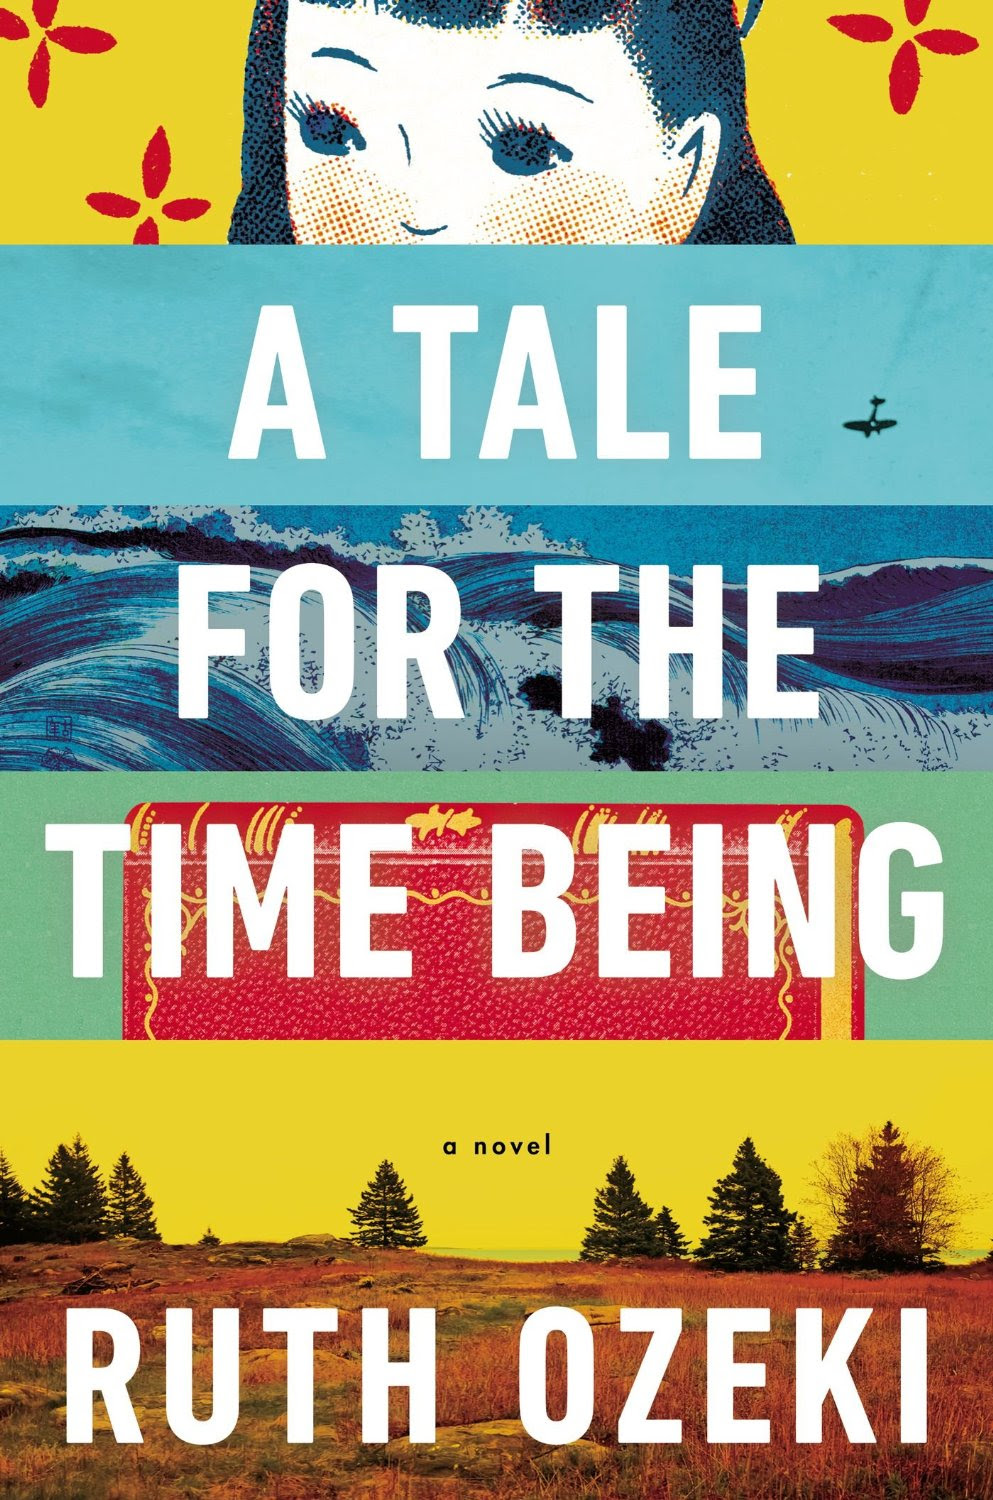 A Tale For the Time Being by Ruth Ozeki - In Tokyo, sixteen-year-old Nao has decided there's only one escape from her aching loneliness and her classmates' bullying, but before she ends it all, Nao plans to document the life of her great-grandmother, a Buddhist nun who's lived more than a century. A diary is Nao's only solace—and will touch lives in a ways she can scarcely imagine. Across the Pacific, we meet Ruth, a novelist living on a remote island who discovers a collection of artifacts washed ashore in a Hello Kitty lunchbox—possibly debris from the devastating 2011 tsunami. As the mystery of its contents unfolds, Ruth is pulled into the past, into Nao's drama and her unknown fate, and forward into her own future. Full of Ozeki's signature humor and deeply engaged with the relationship between writer and reader, past and present, fact and fiction, quantum physics, history, and myth, A Tale for the Time Being is a brilliantly inventive, beguiling story of our shared humanity and the search for home.  (From Goodreads)